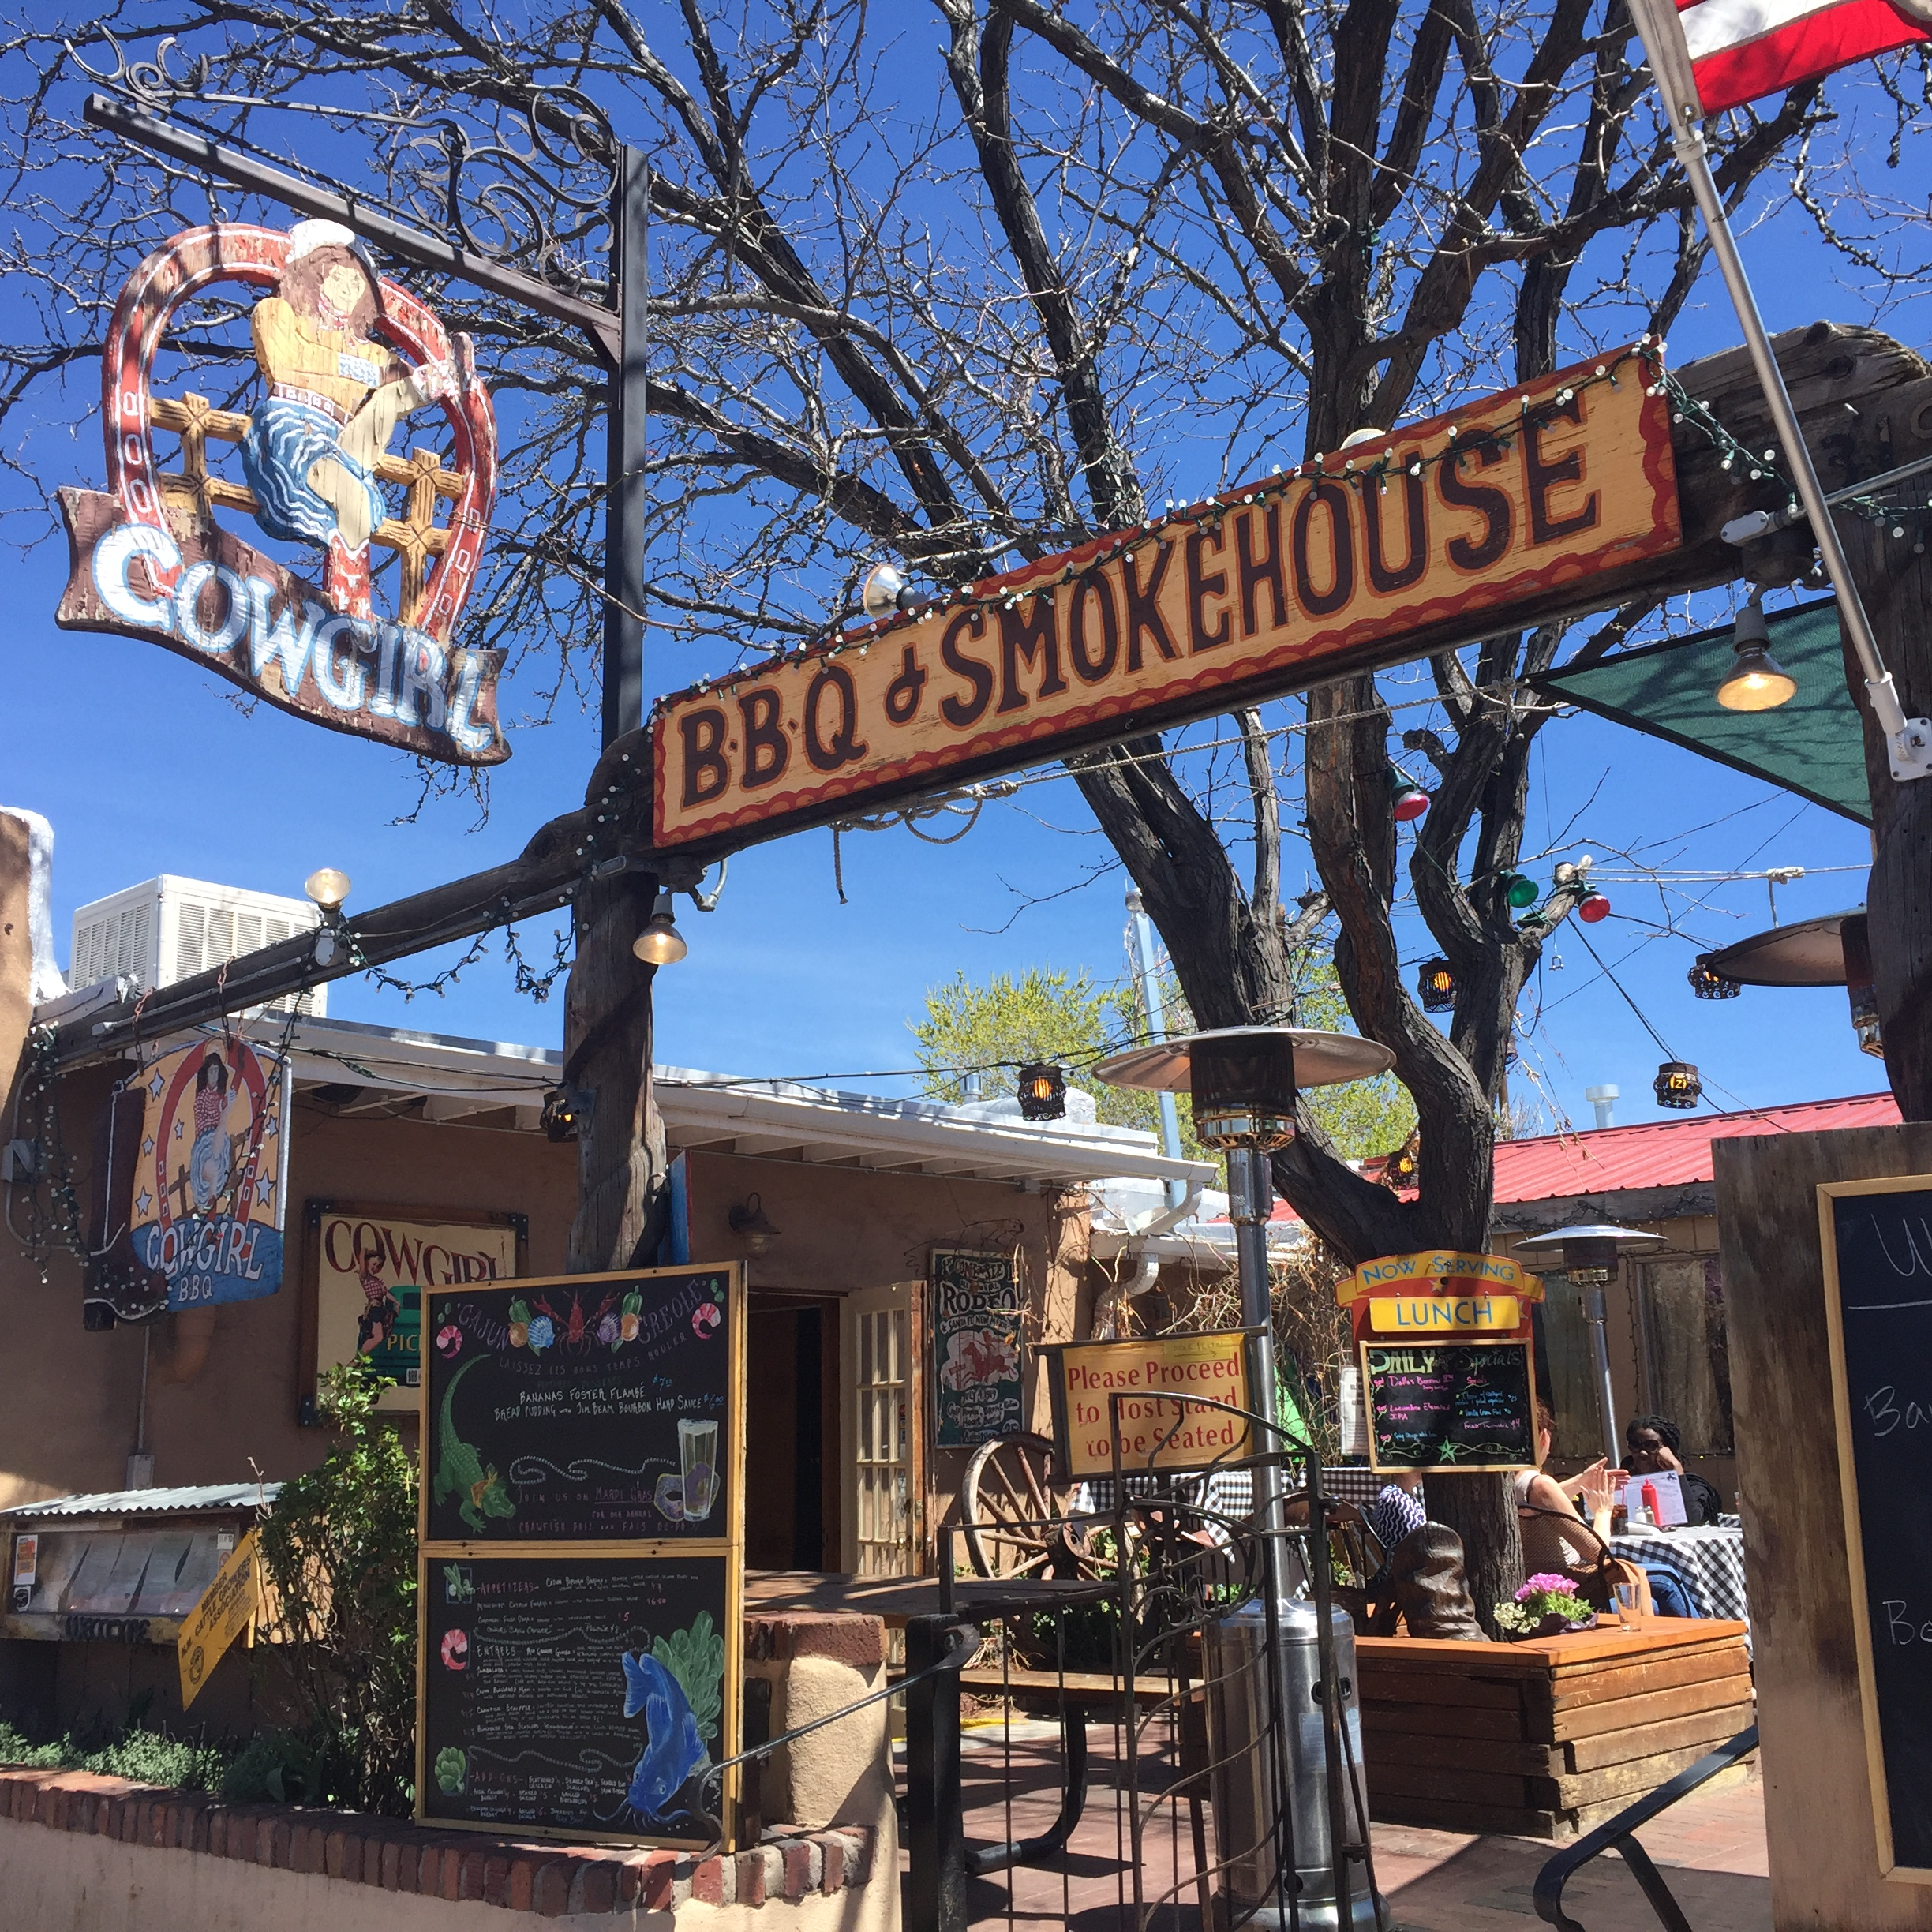 Cowgirl Smokehouse